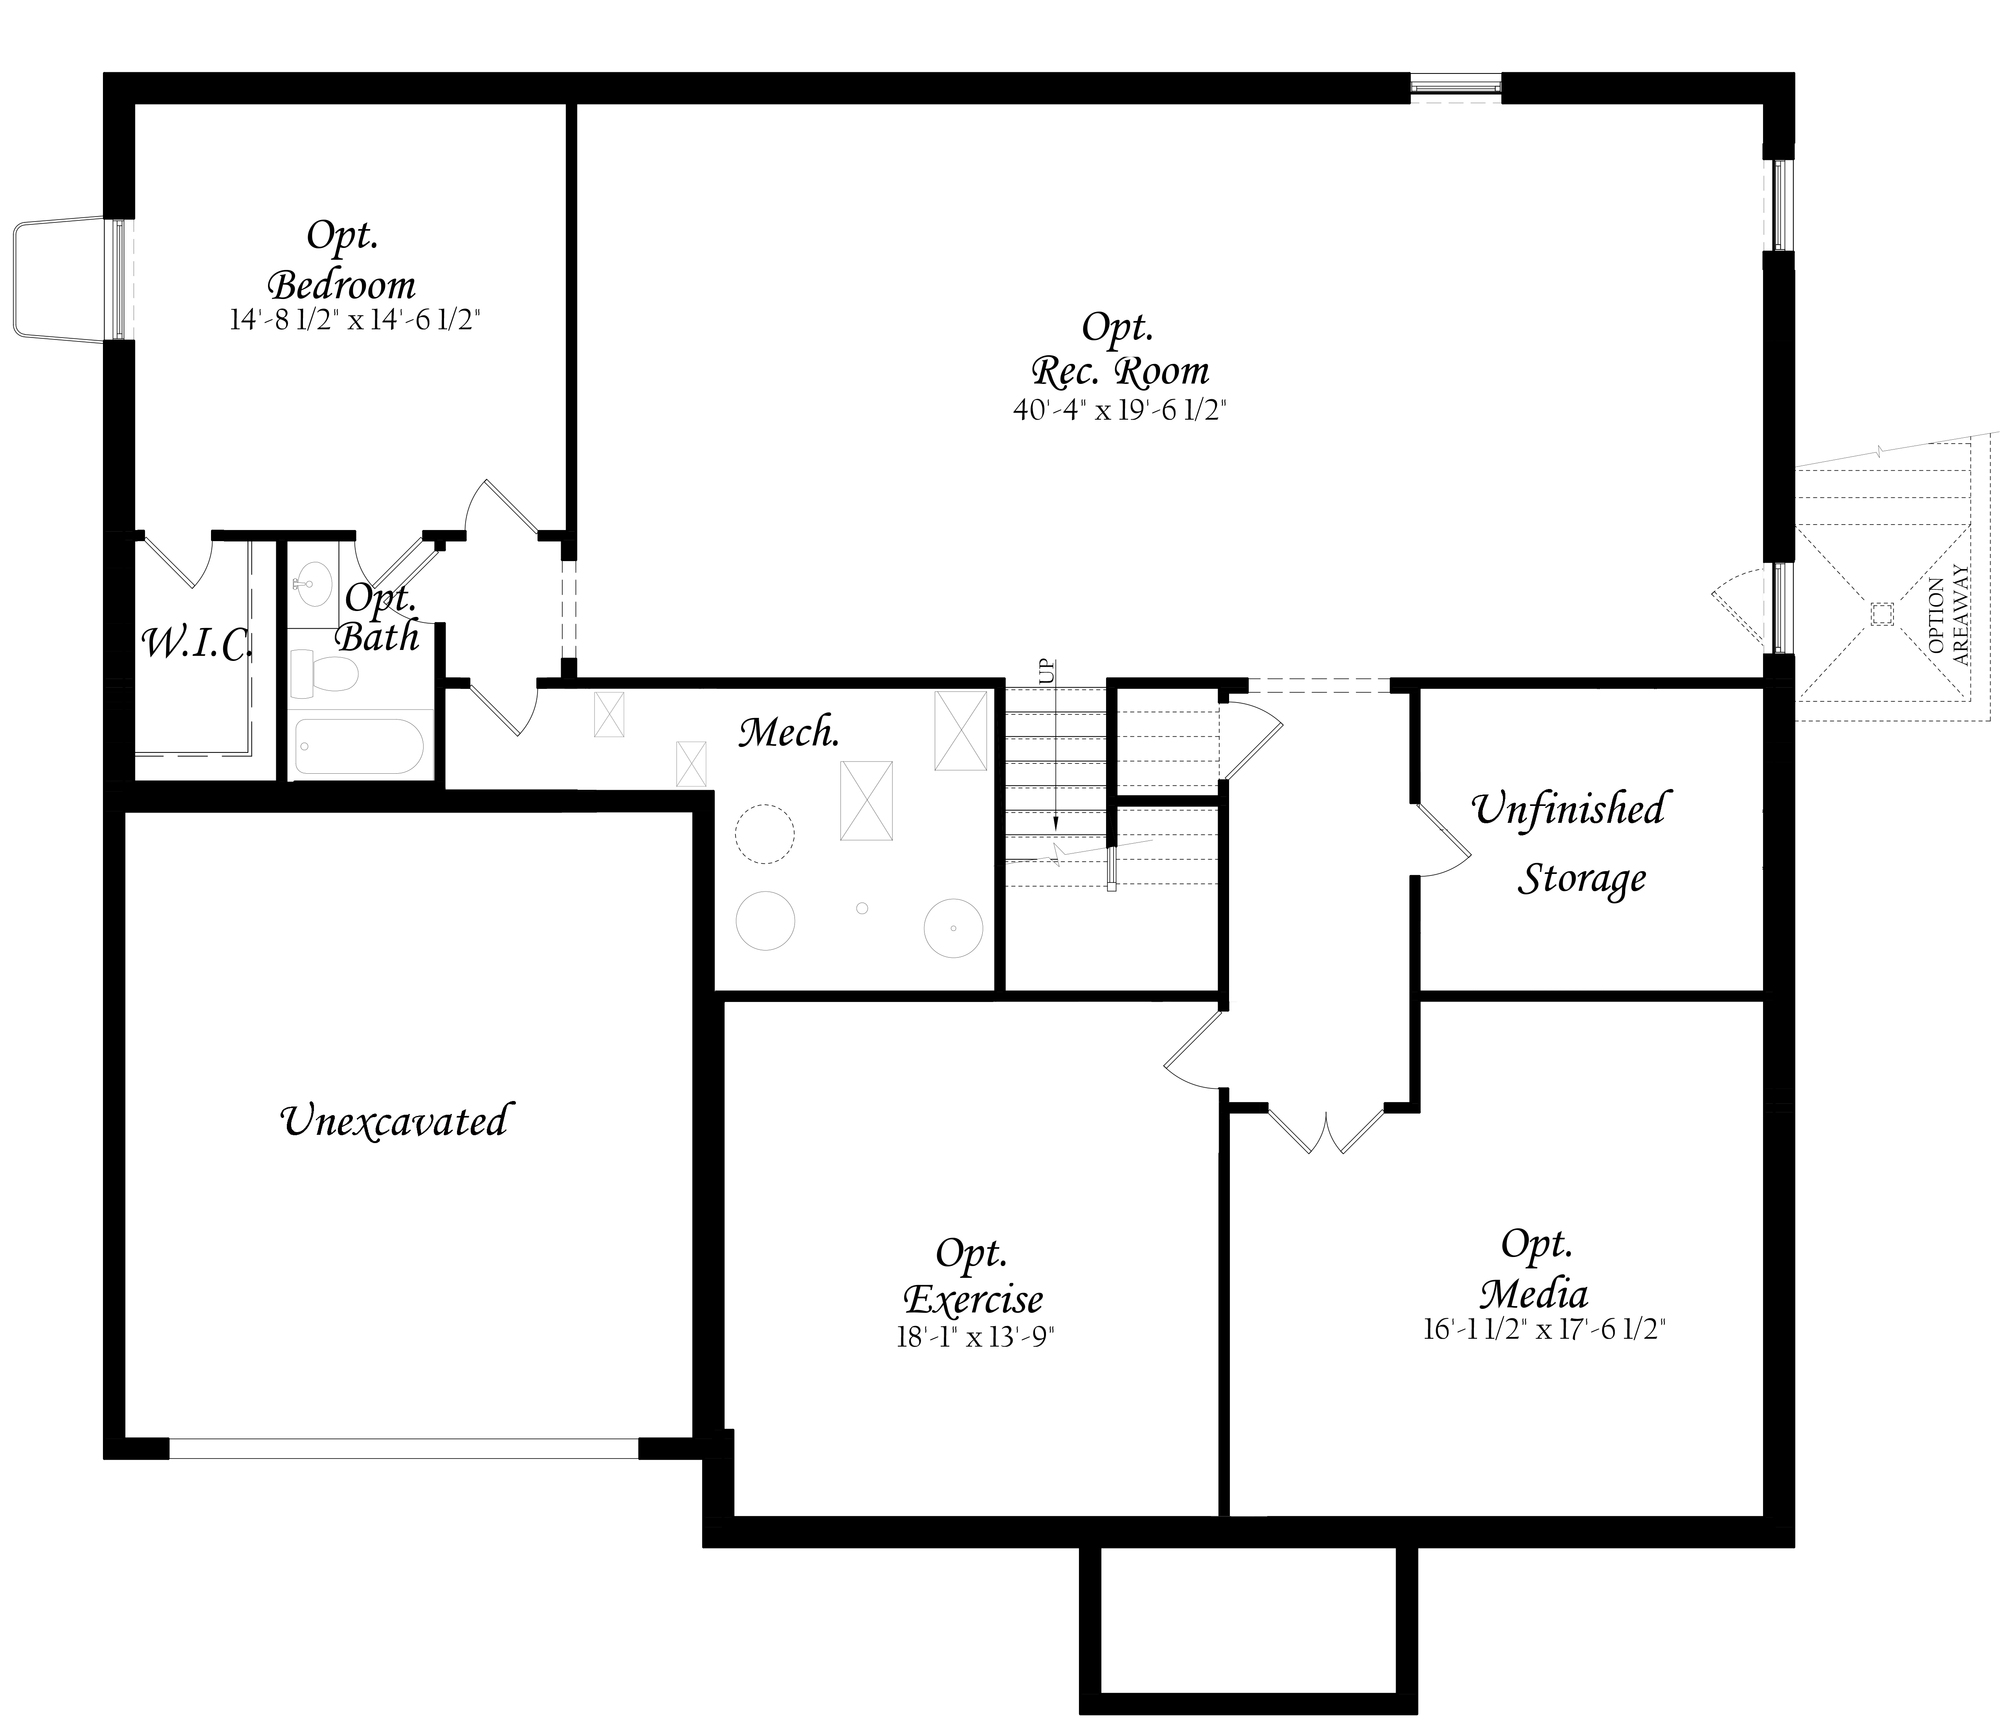 7-6-18 Chapman 3x0 - Master - Floor Plan - Elevation A - Lower Level